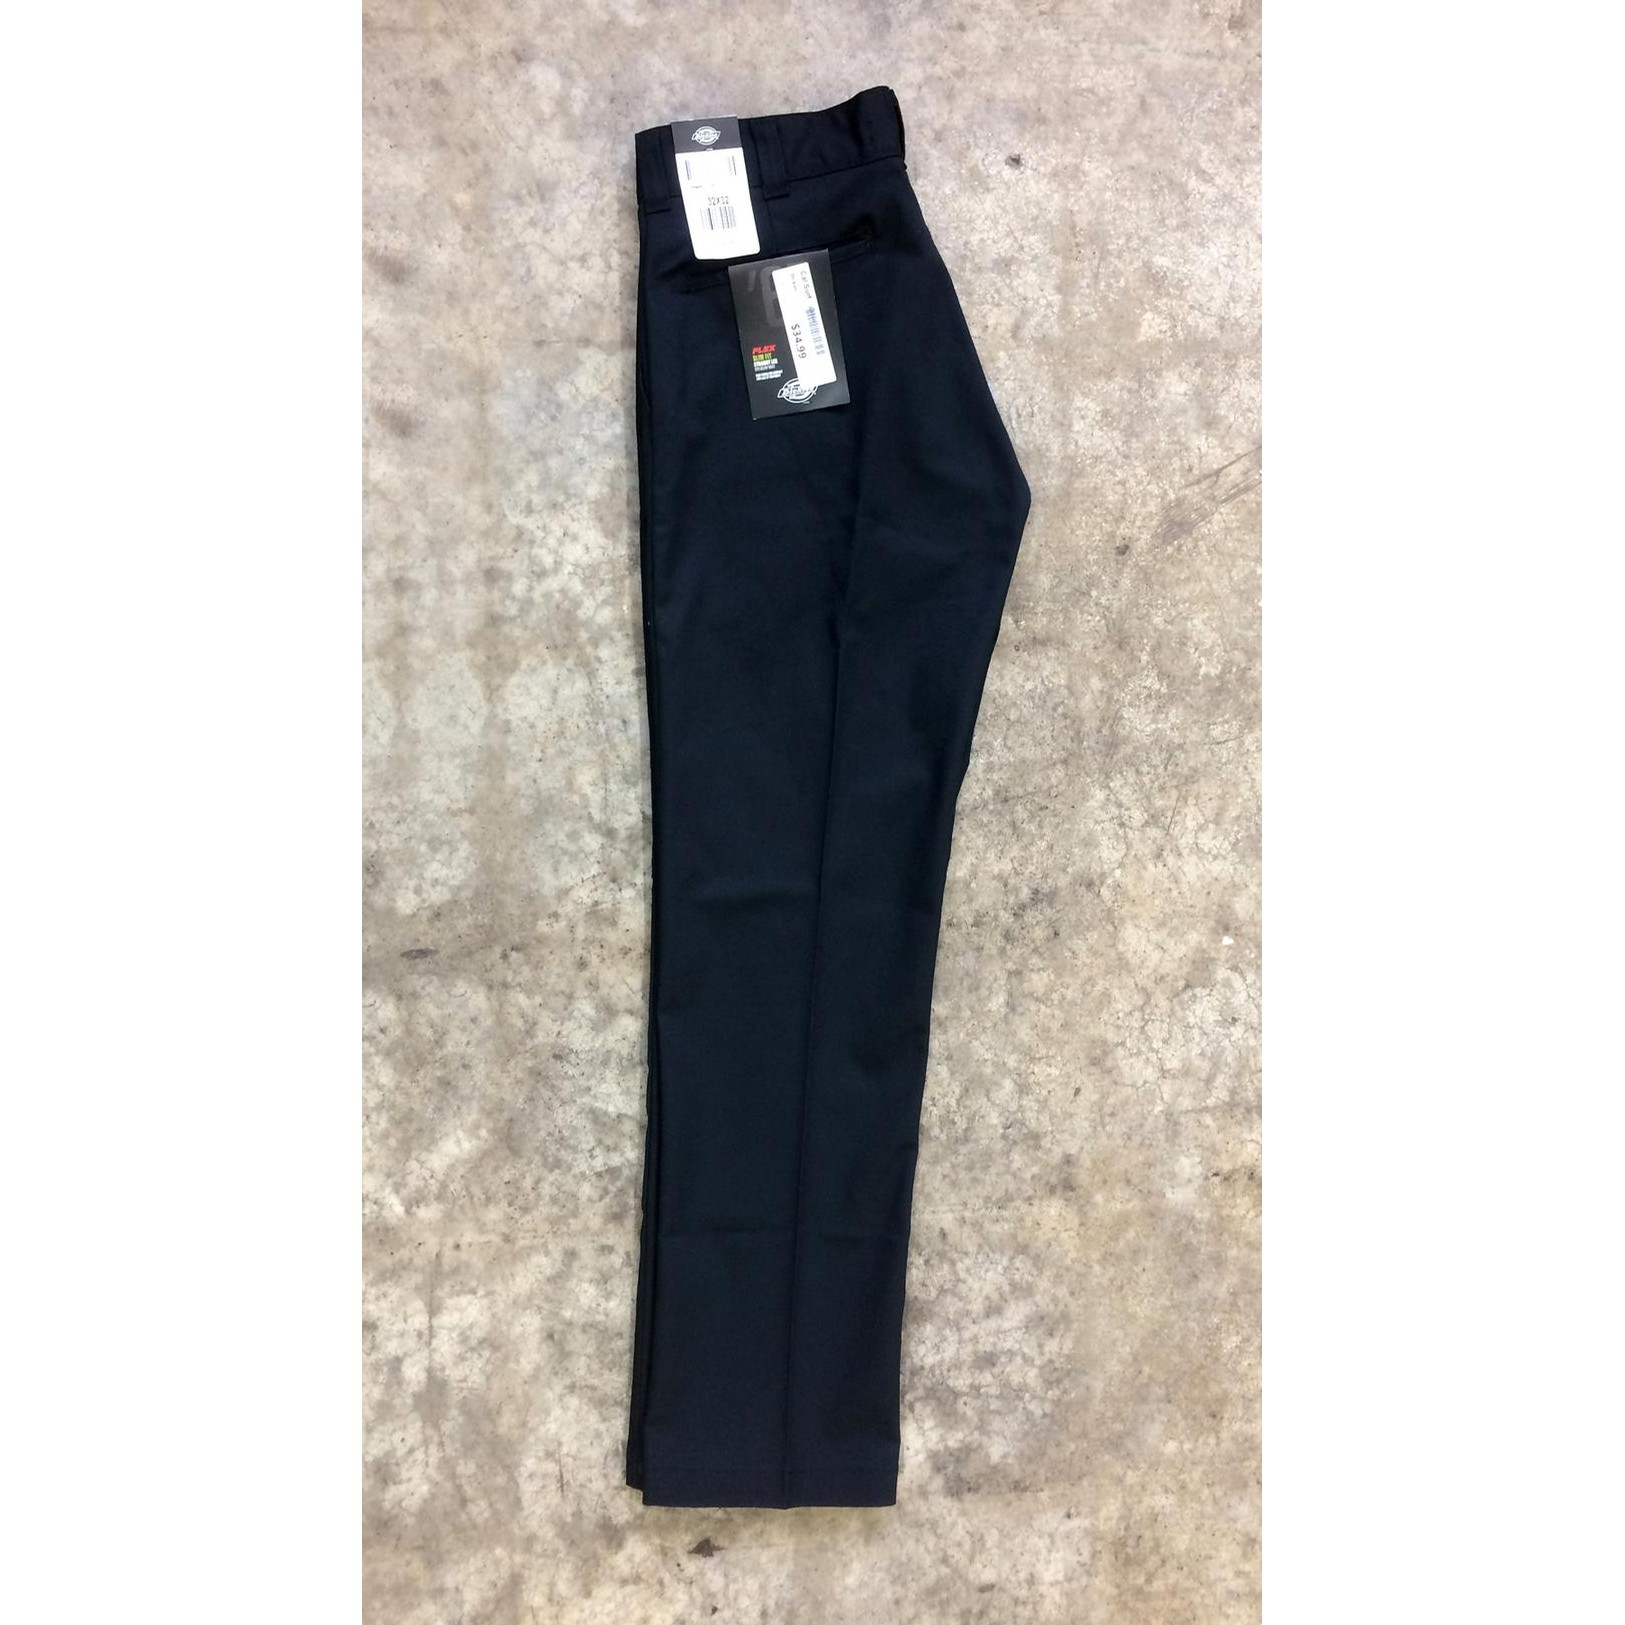 67 Collection Slim Straight Work Pant(bk)